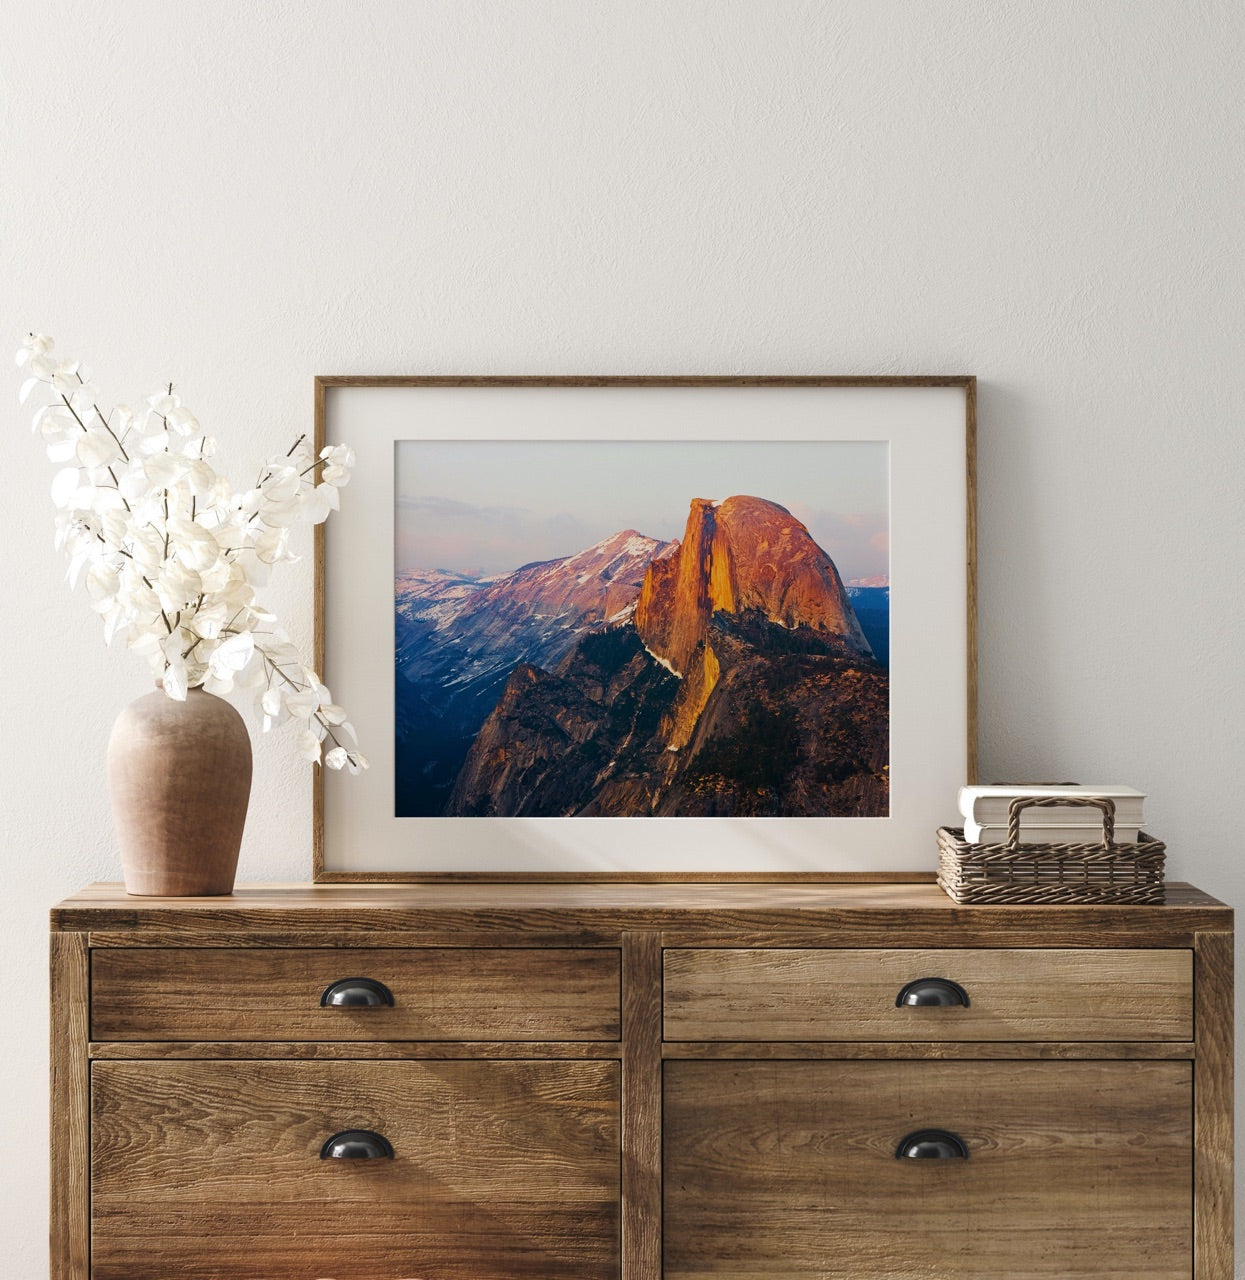 Framed Photograph of Half Dome Yosemite